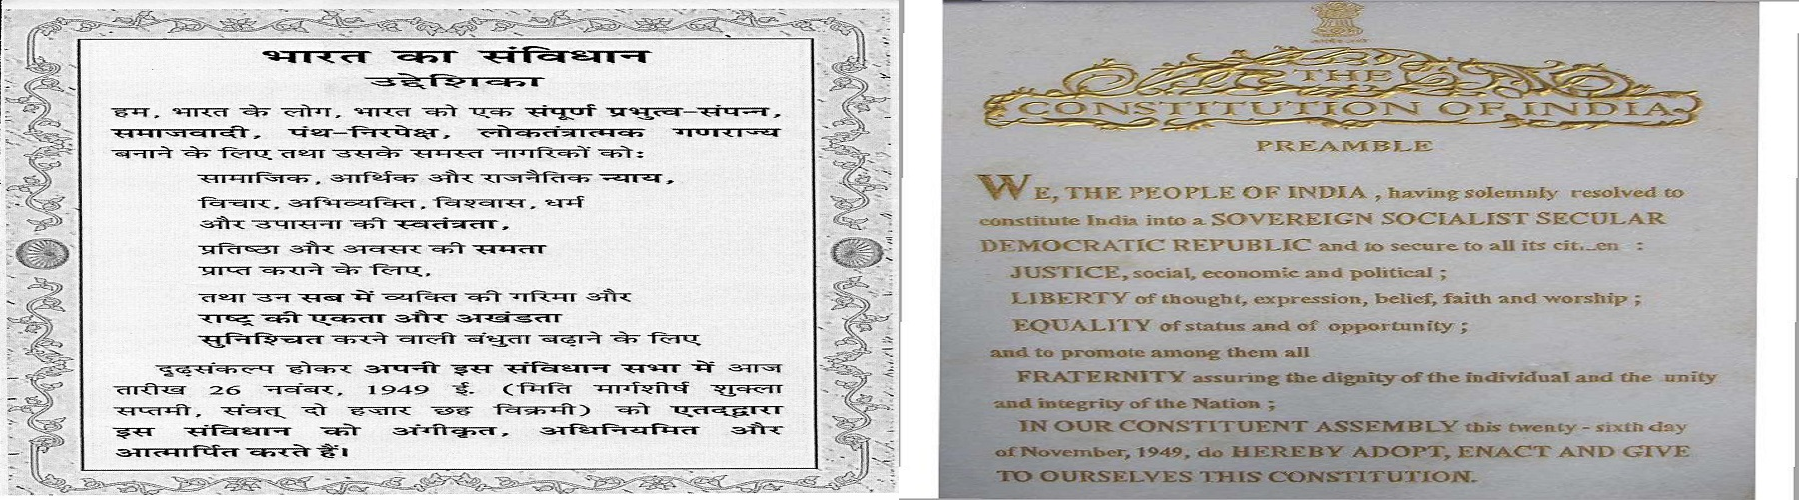 Observance of Constitution Day on 26th of November, 2020